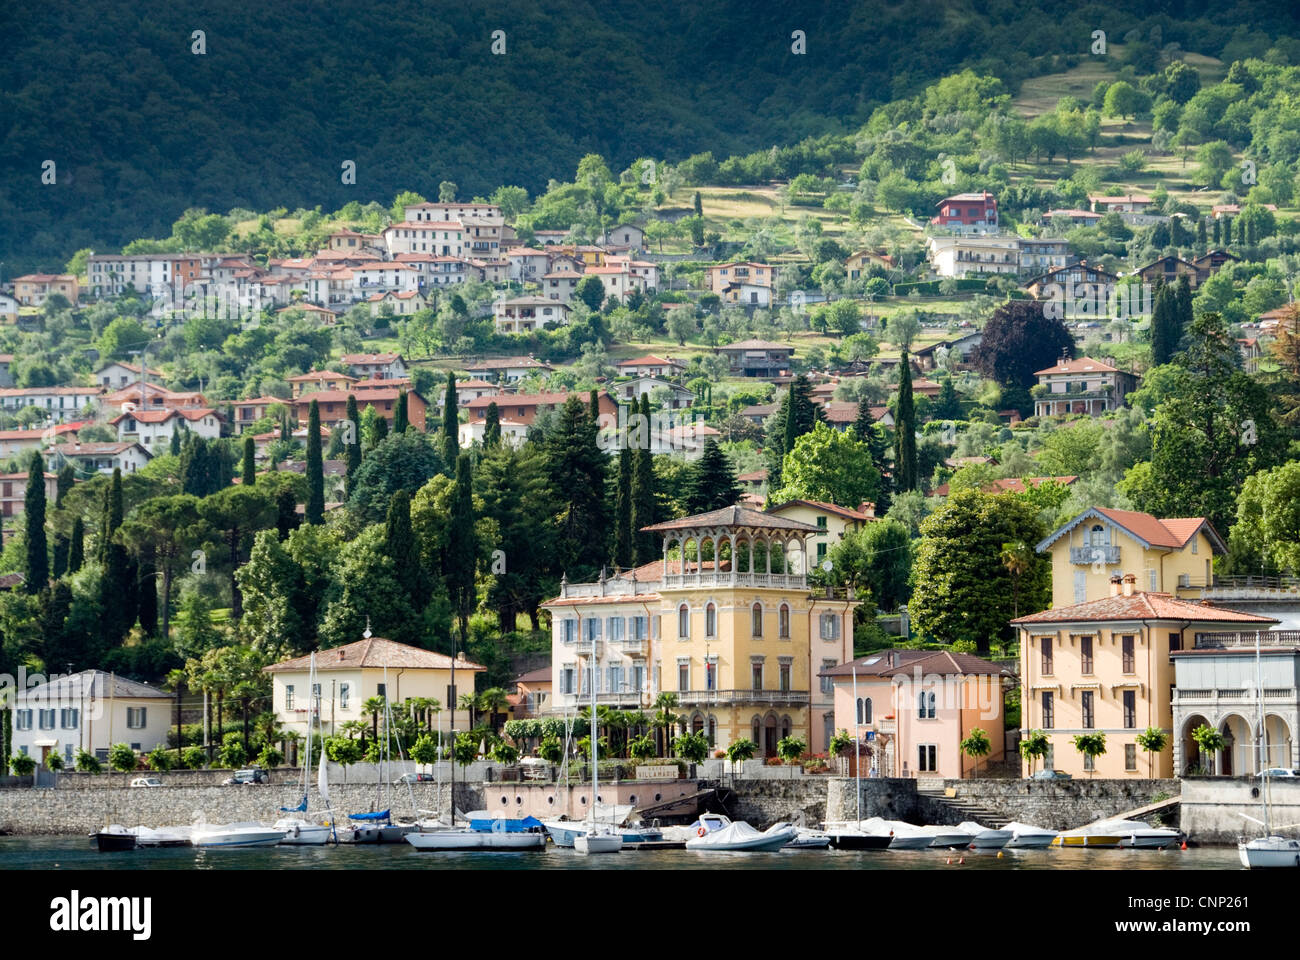 Villa Marie Tremezzo : tremezzo lake front with hotel villa marie at the centre lake como stock photo royalty free ~ Markanthonyermac.com Haus und Dekorationen